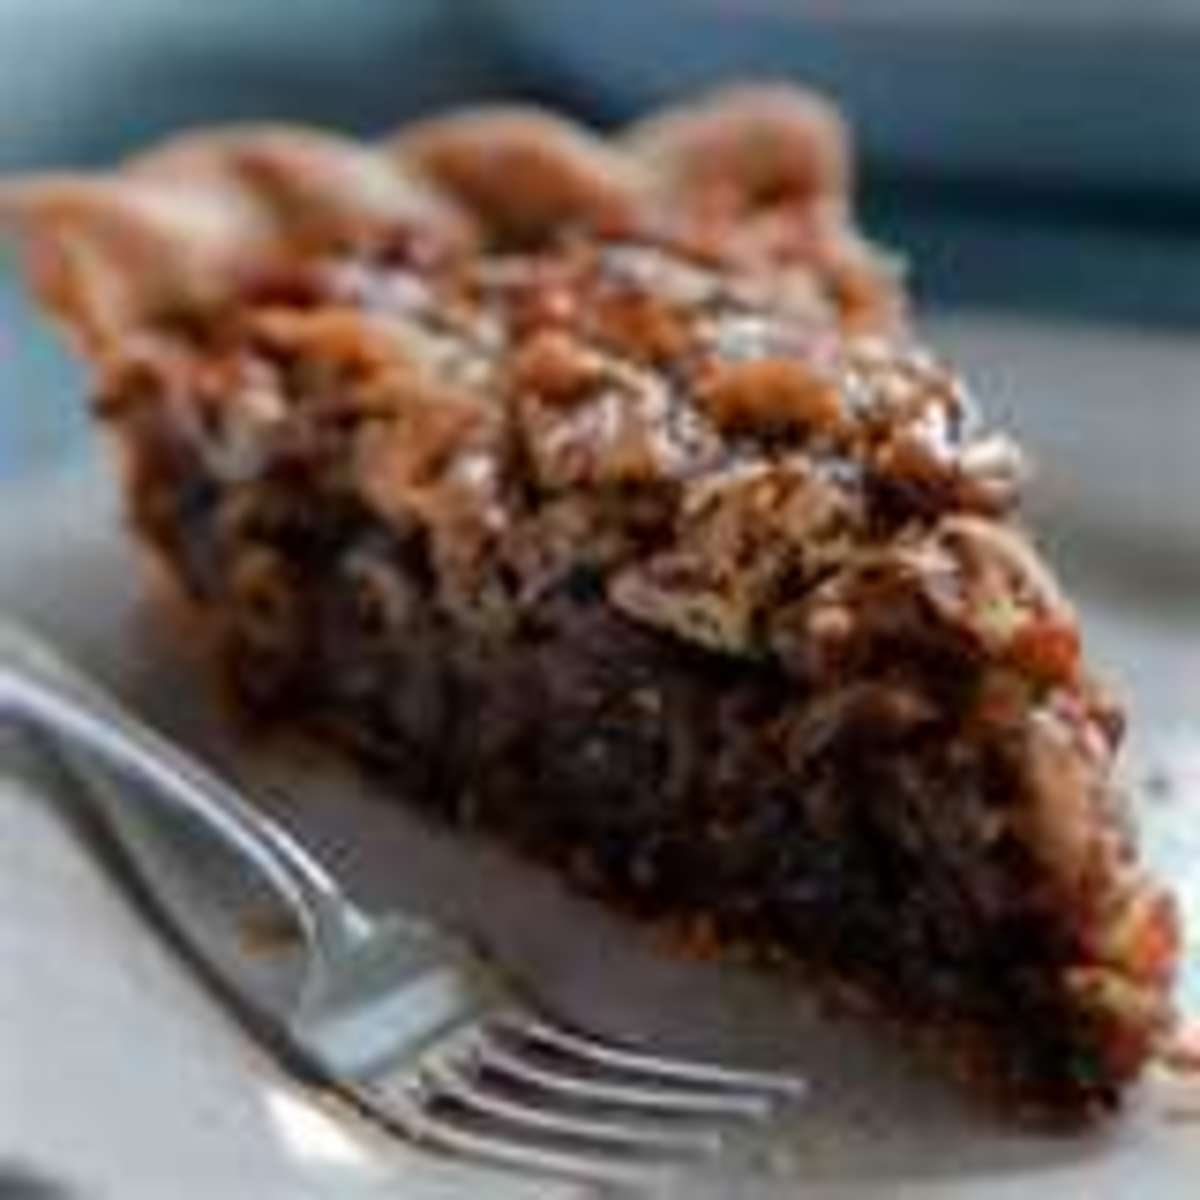 Adding chocolate makes the mock pecan pie even more mysterious.